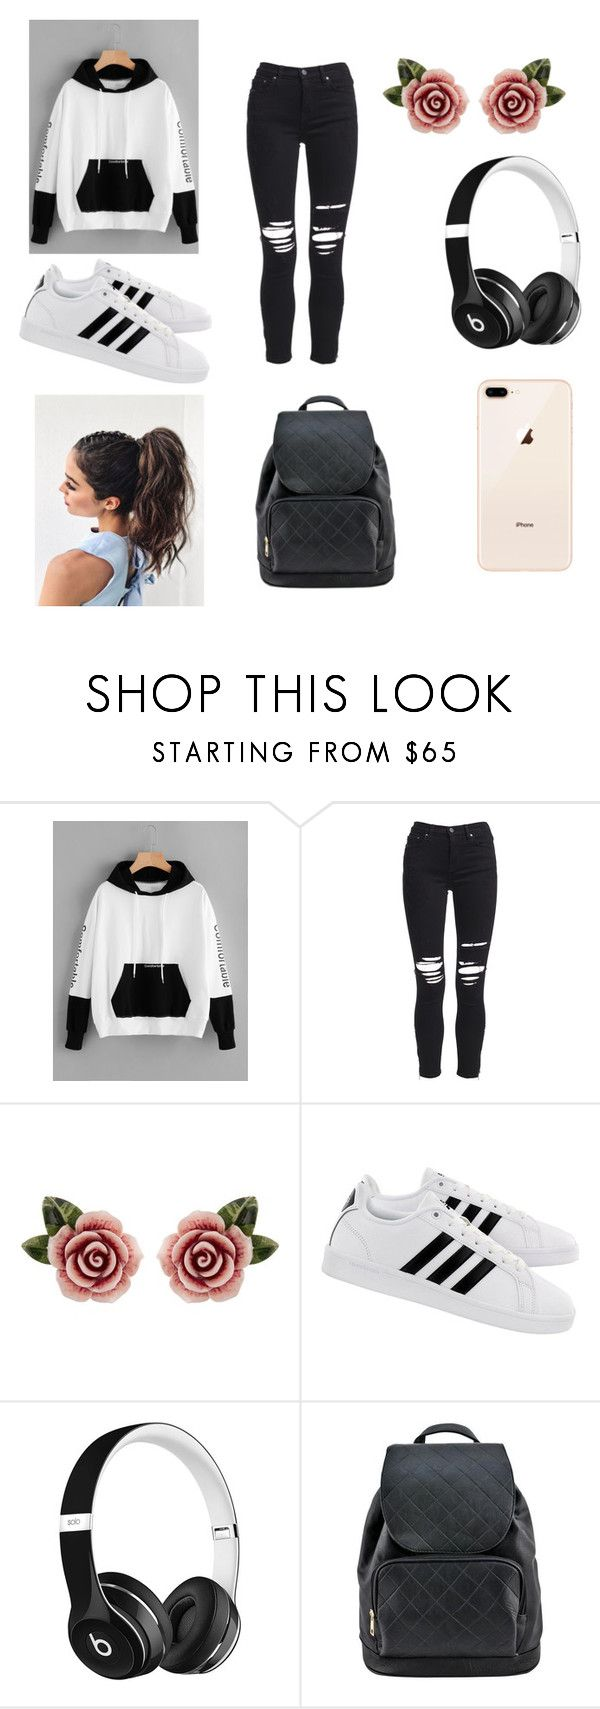 Untitled #44 by palaghia-teona on Polyvore featuring AMIRI, adidas, Dolce&Gabbana and Beats by Dr. Dre